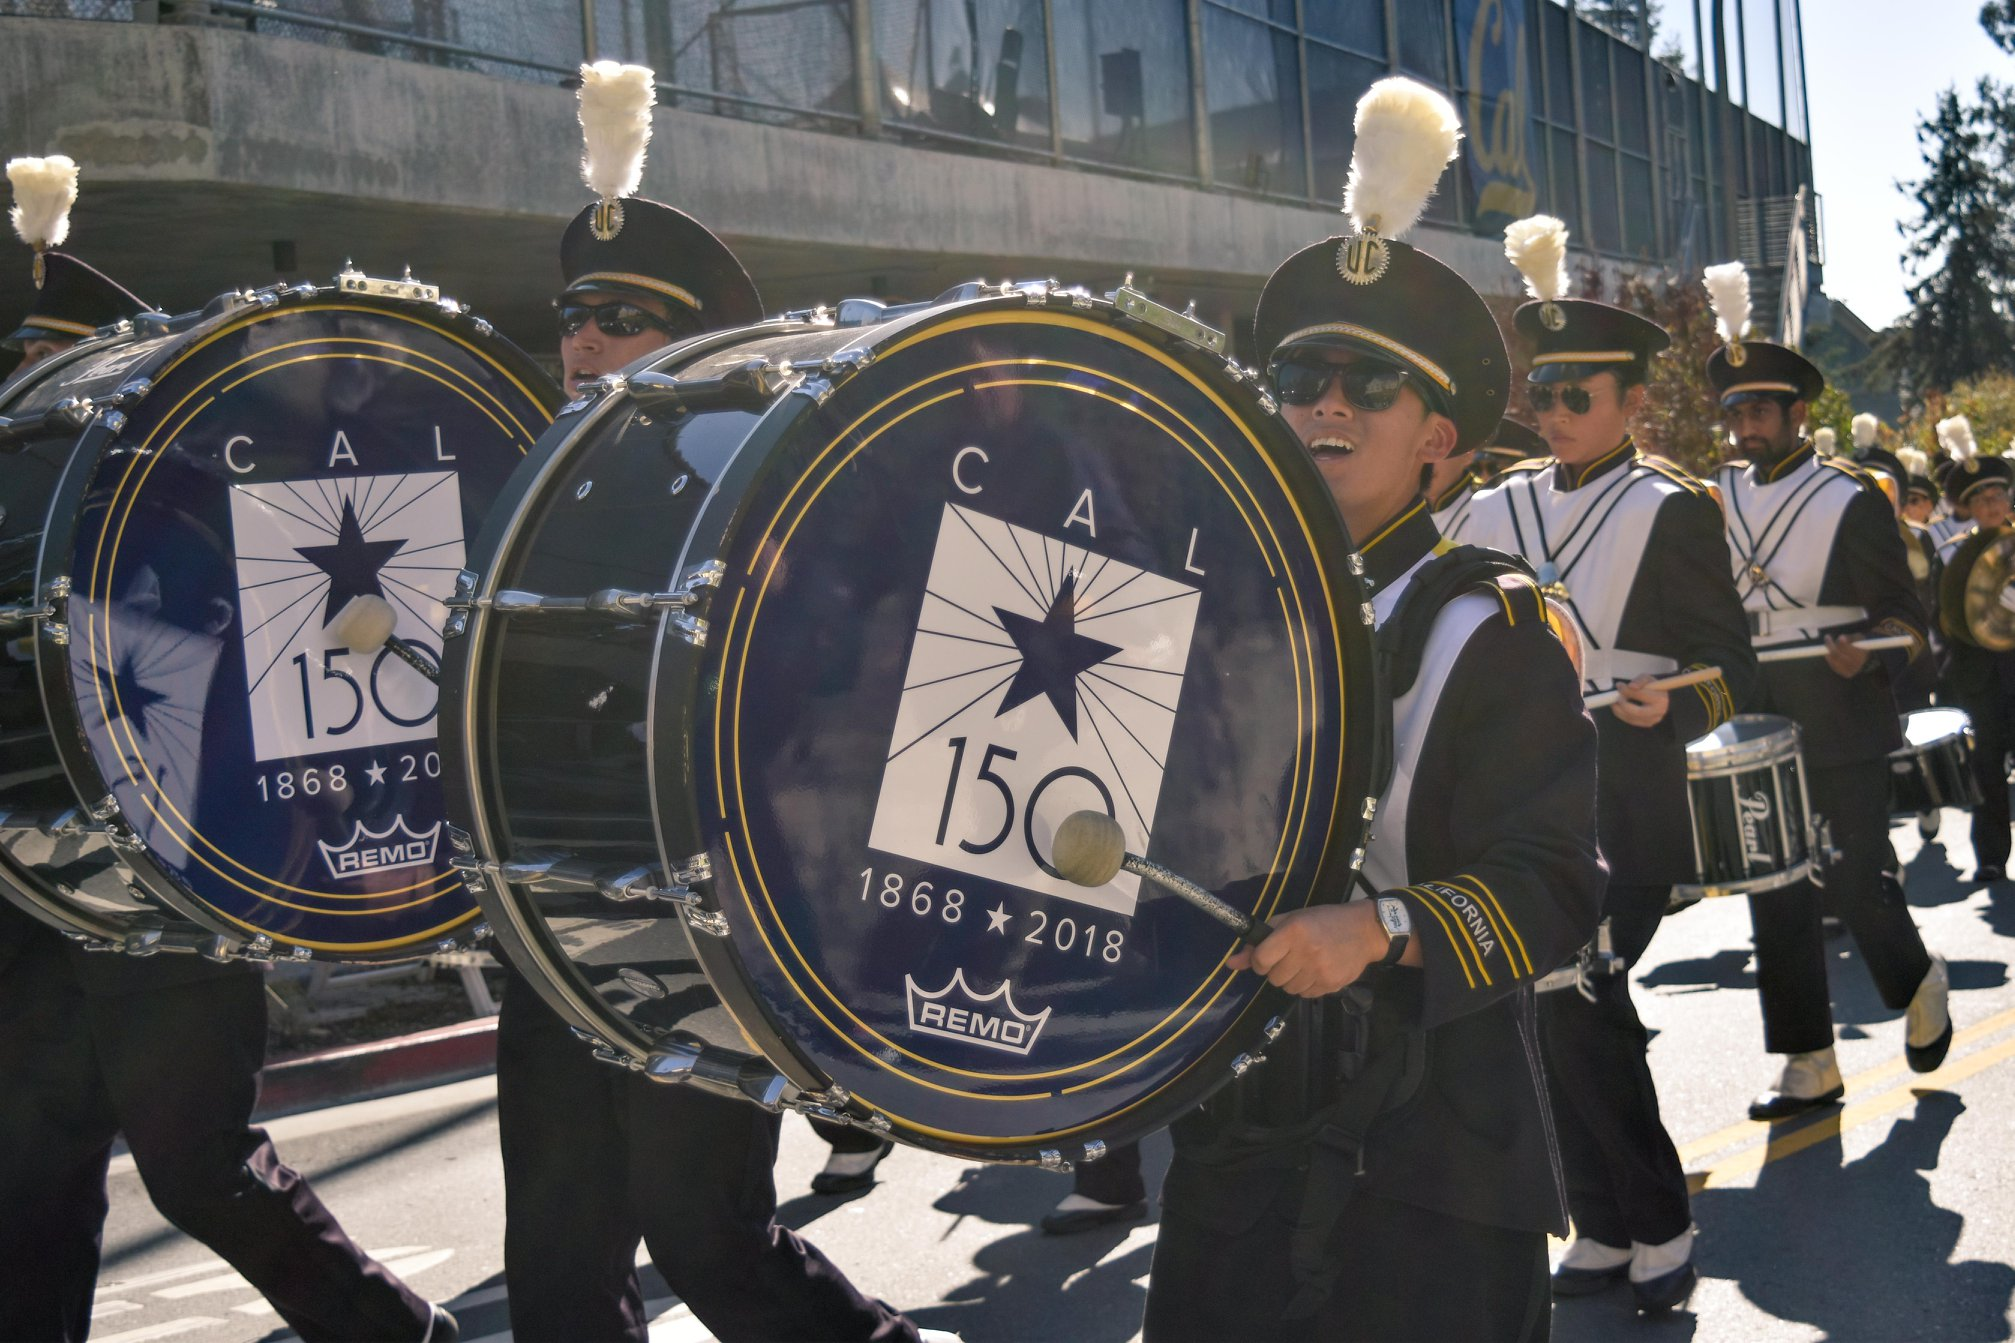 Bass Drum Marchup